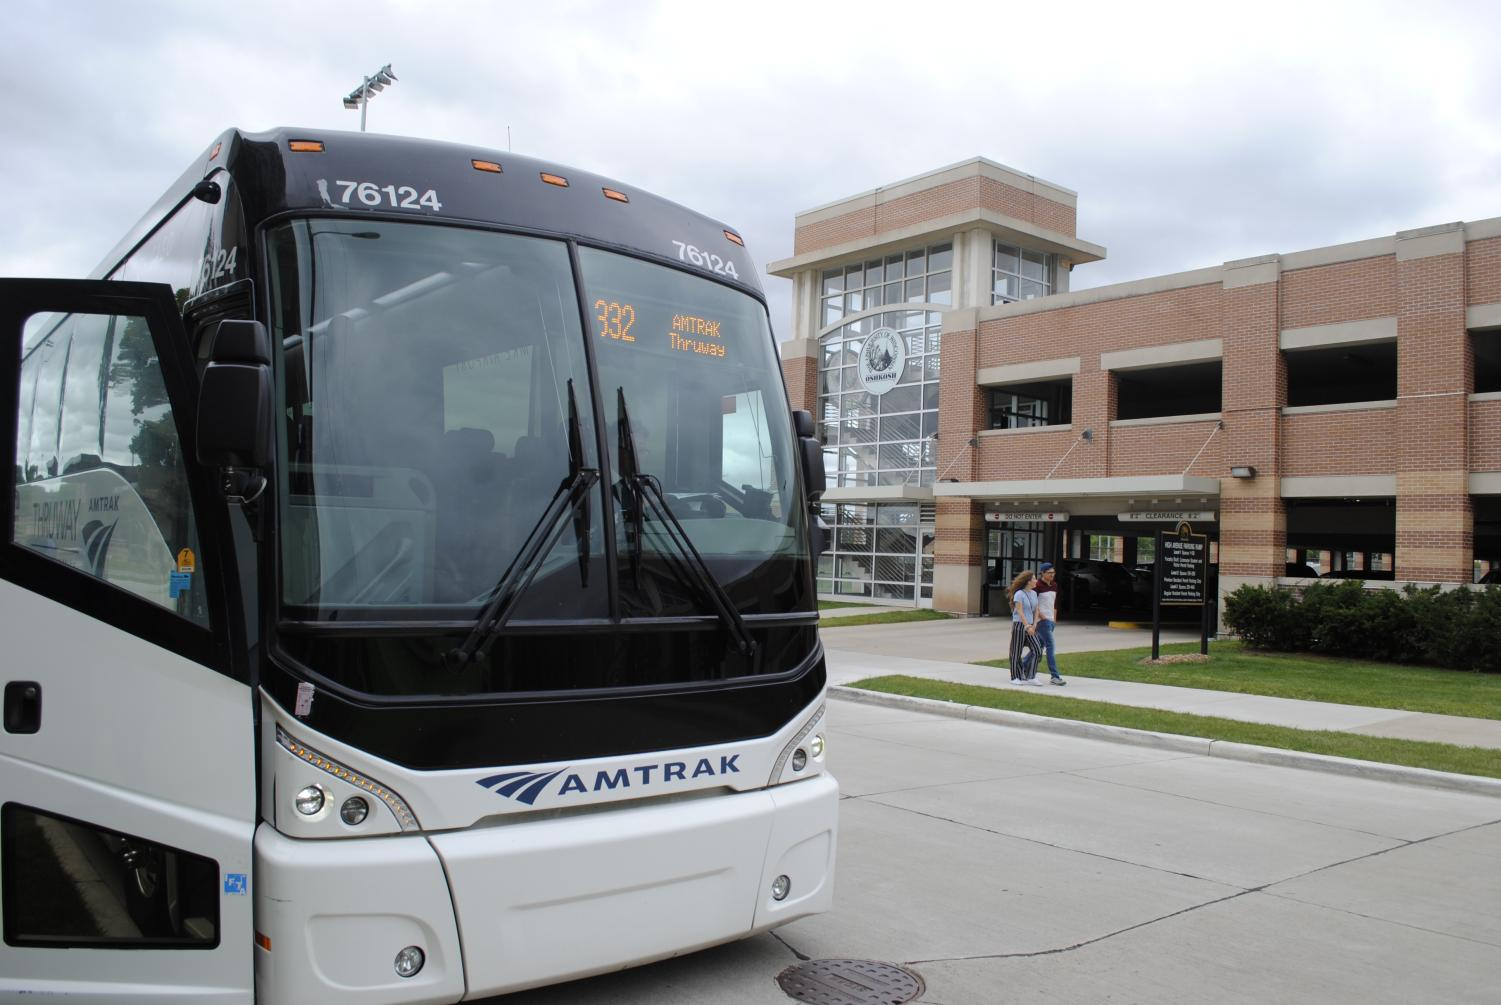 A new Amtrak bus route includes a stop at Gruenhagen Conference Center.